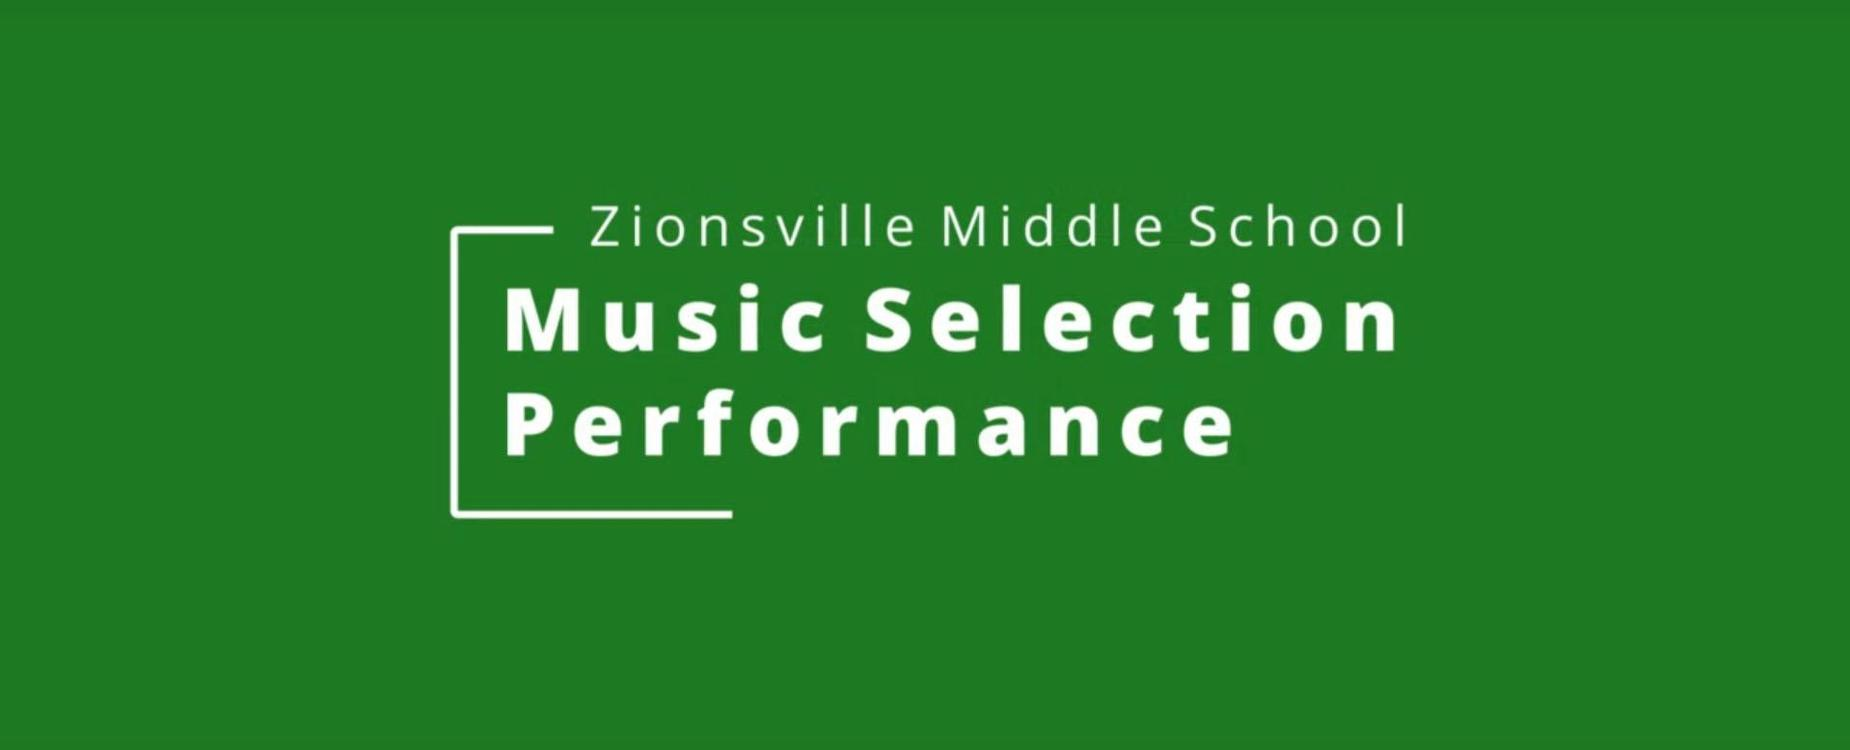 ZMS Music Selection Performance